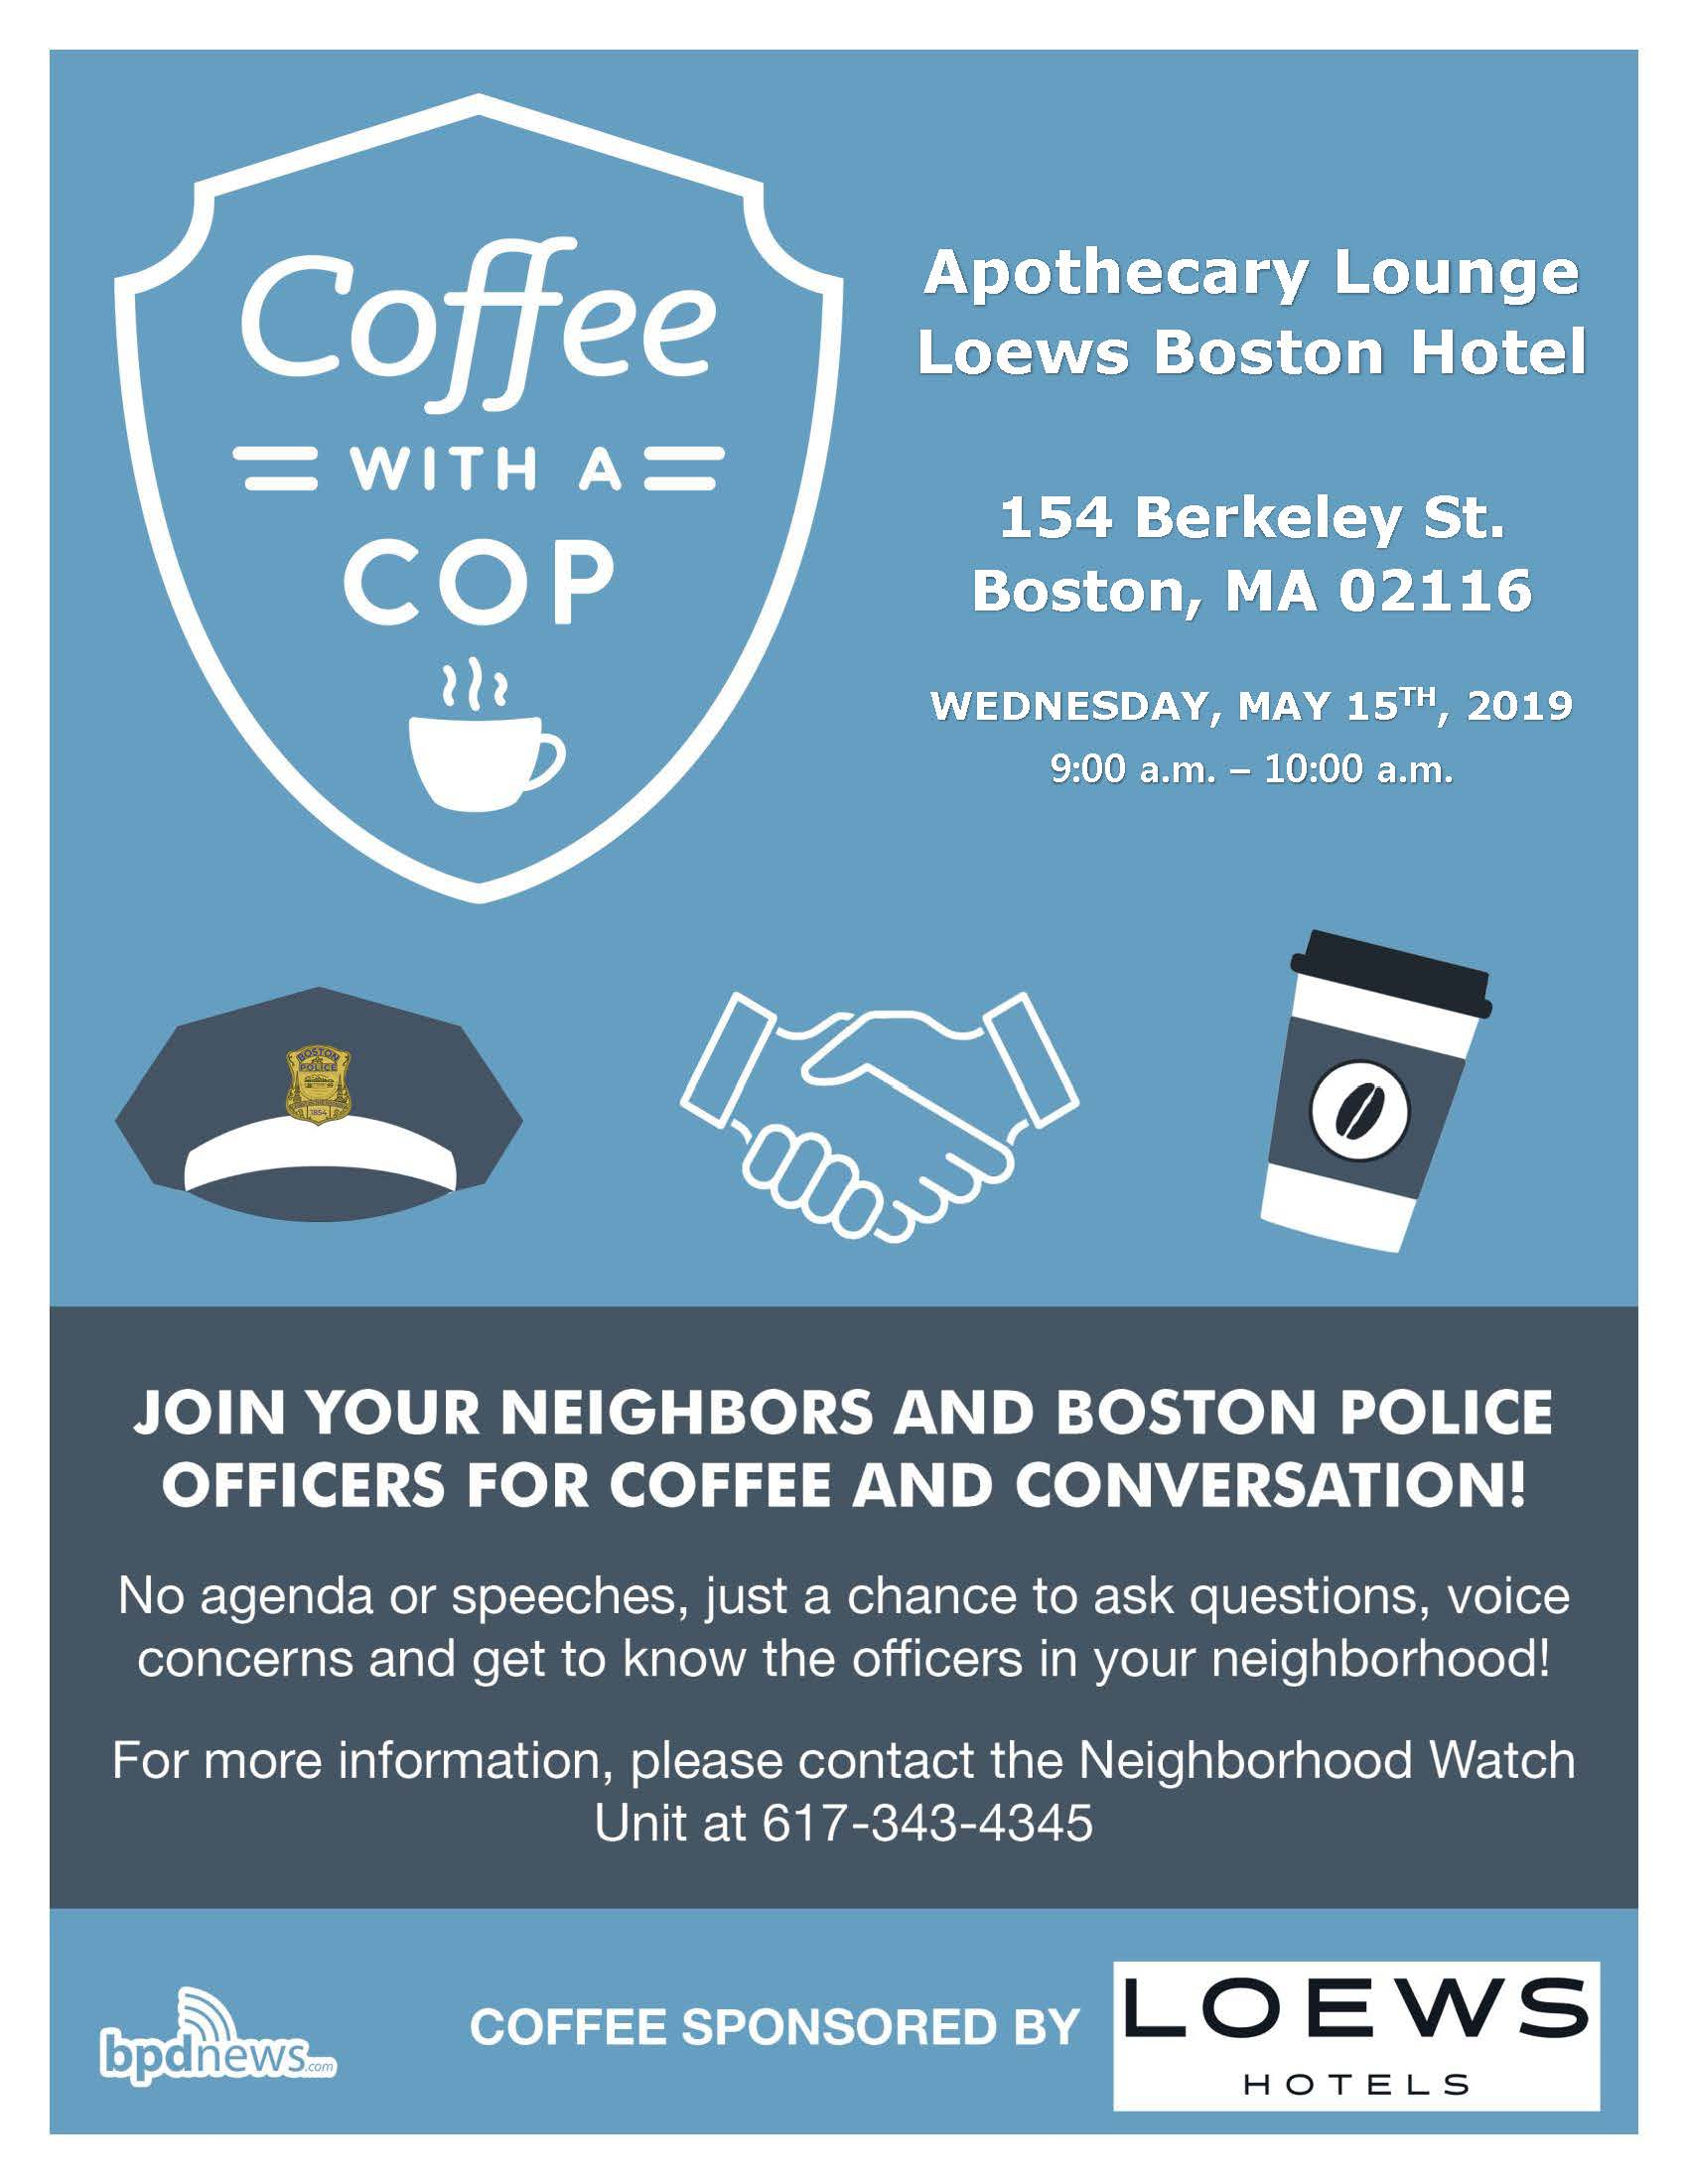 LOWES HOTEL Coffee with a Cop 2019 (1).jpg